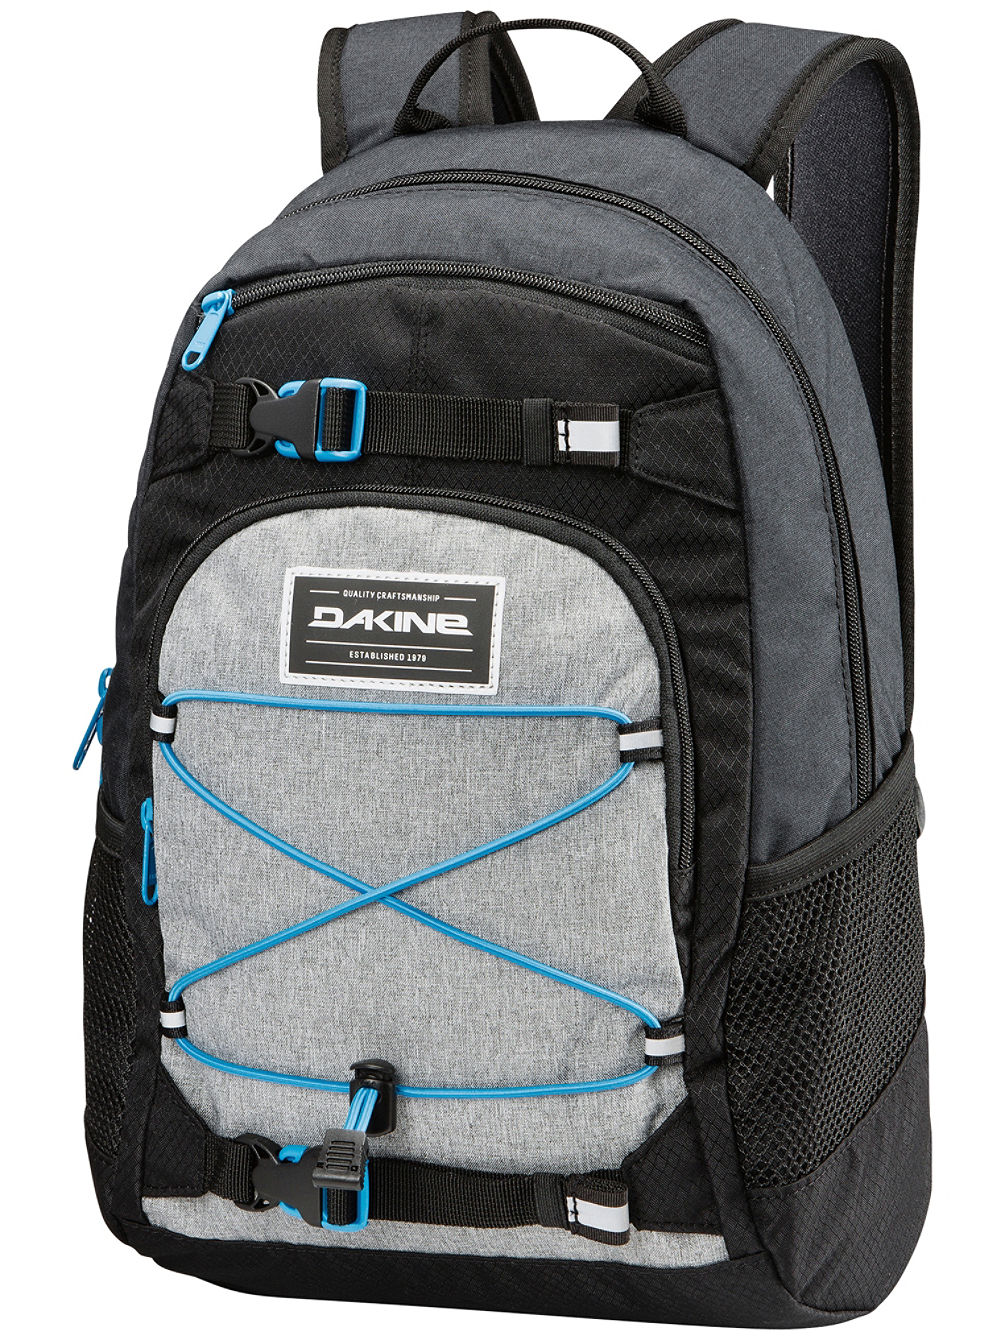 Grom 13L Backpack Youth